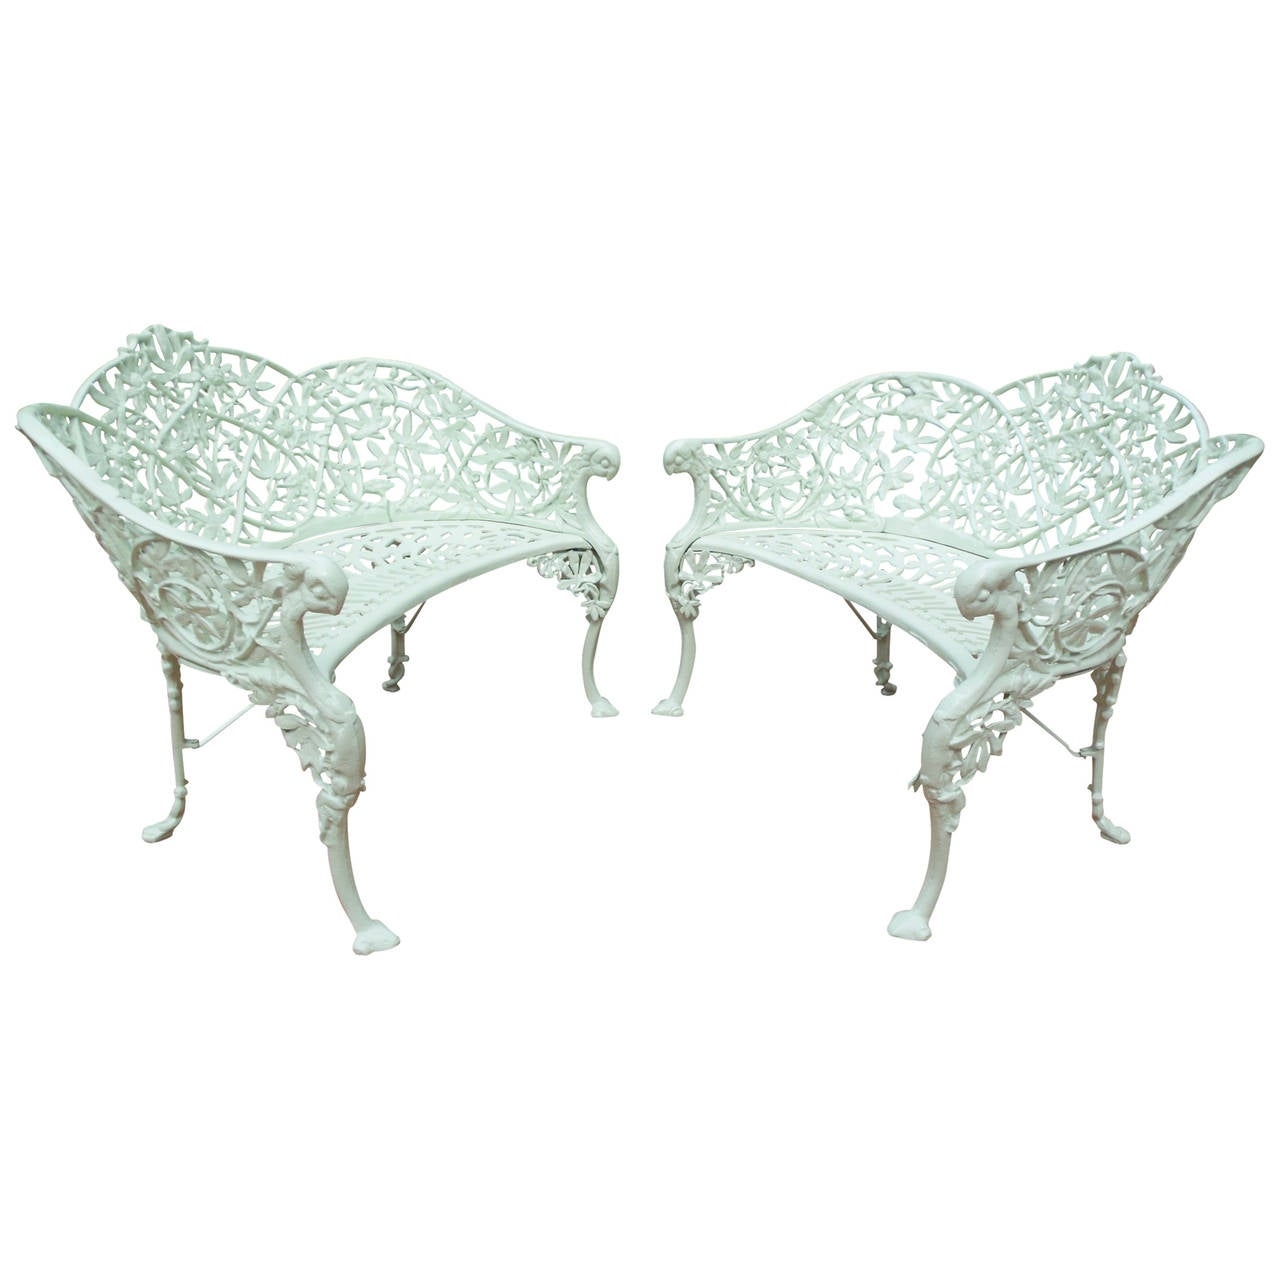 Antique Cast Iron Passion Flower Pair of Benches